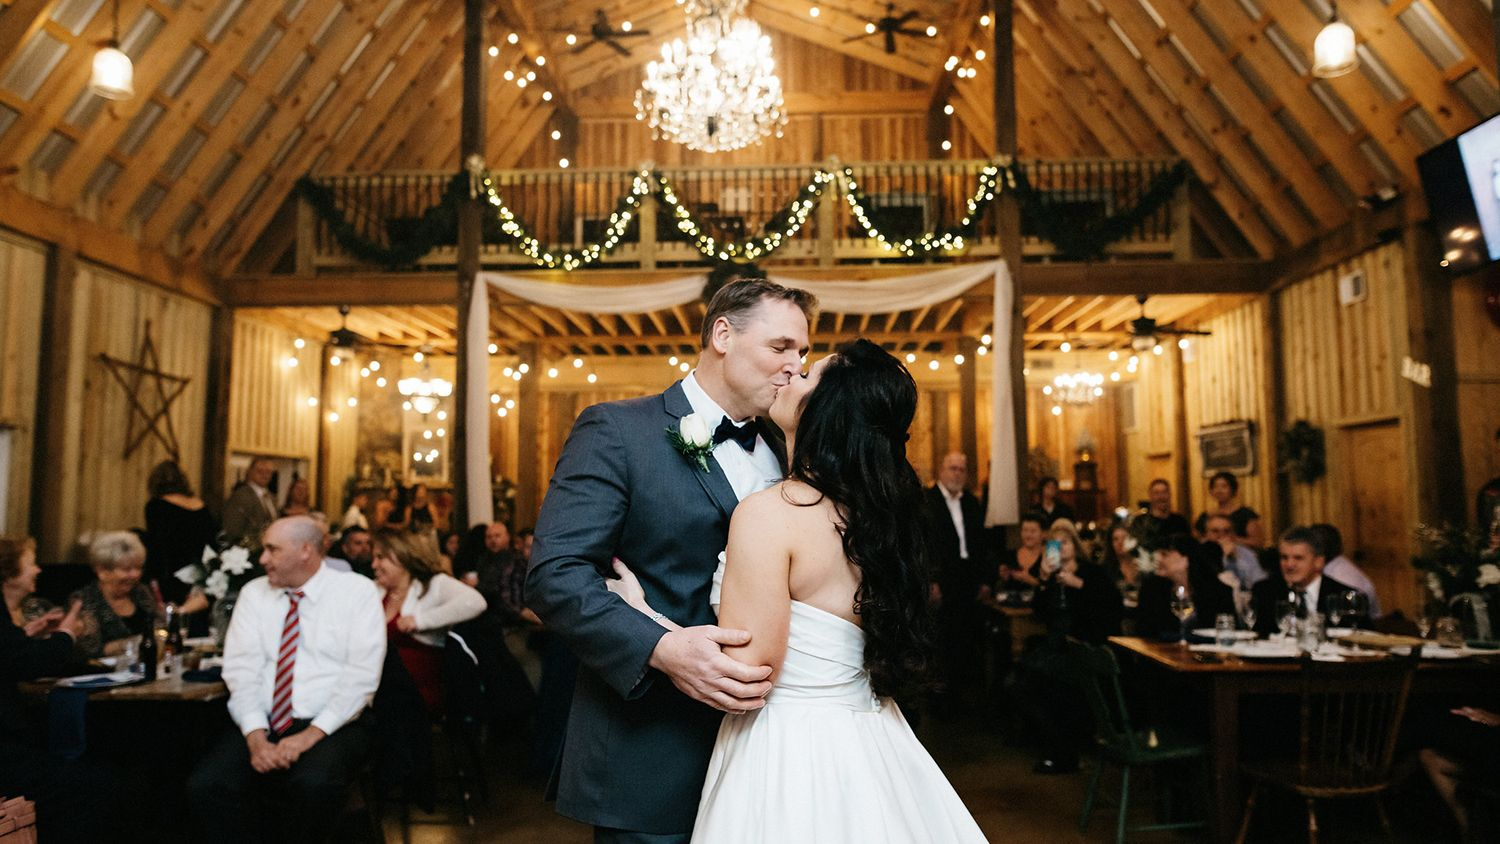 Bride And Groom Kissing In Reception Barn